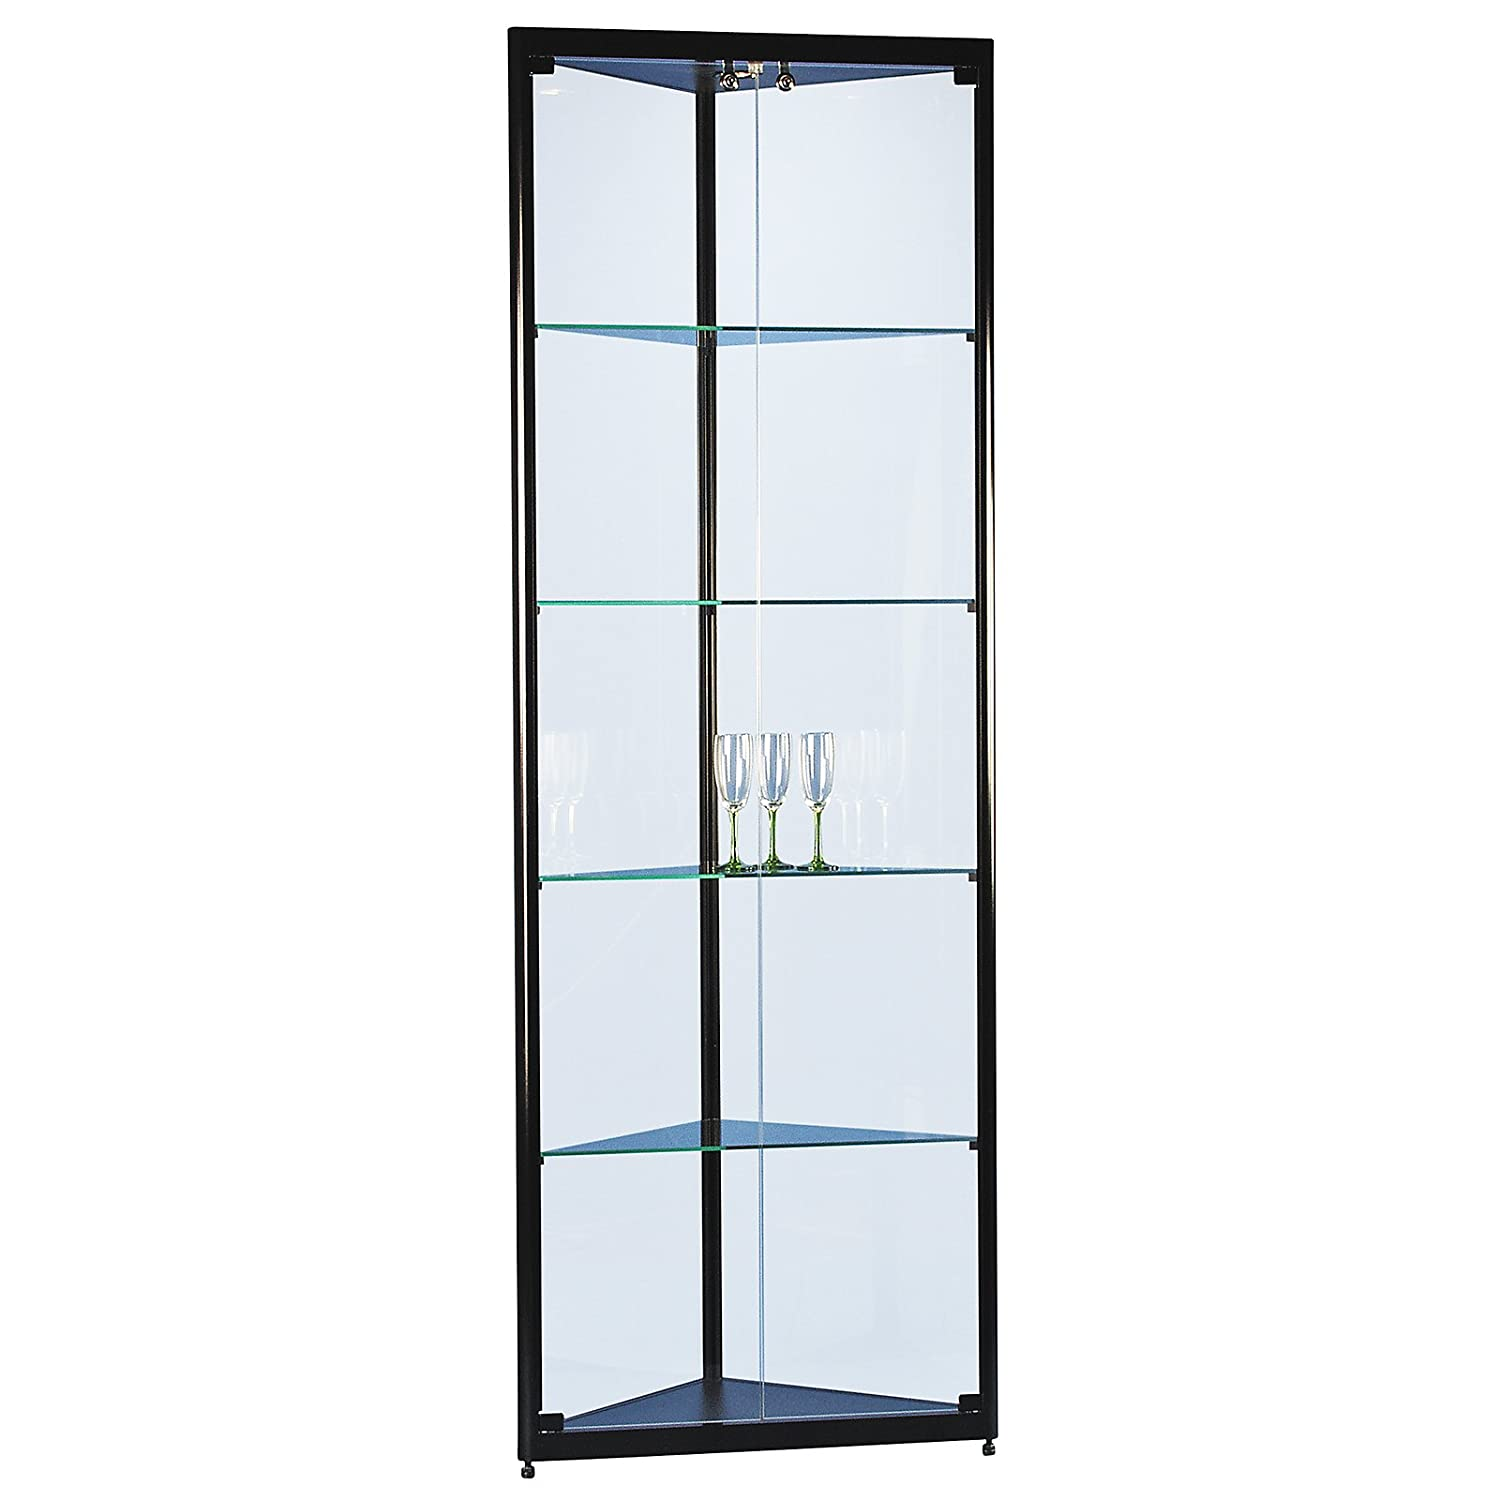 eckvitrine glasvitrine standvitrine sammlervitrine basic 500 alu schwarz glas beleuchtet. Black Bedroom Furniture Sets. Home Design Ideas